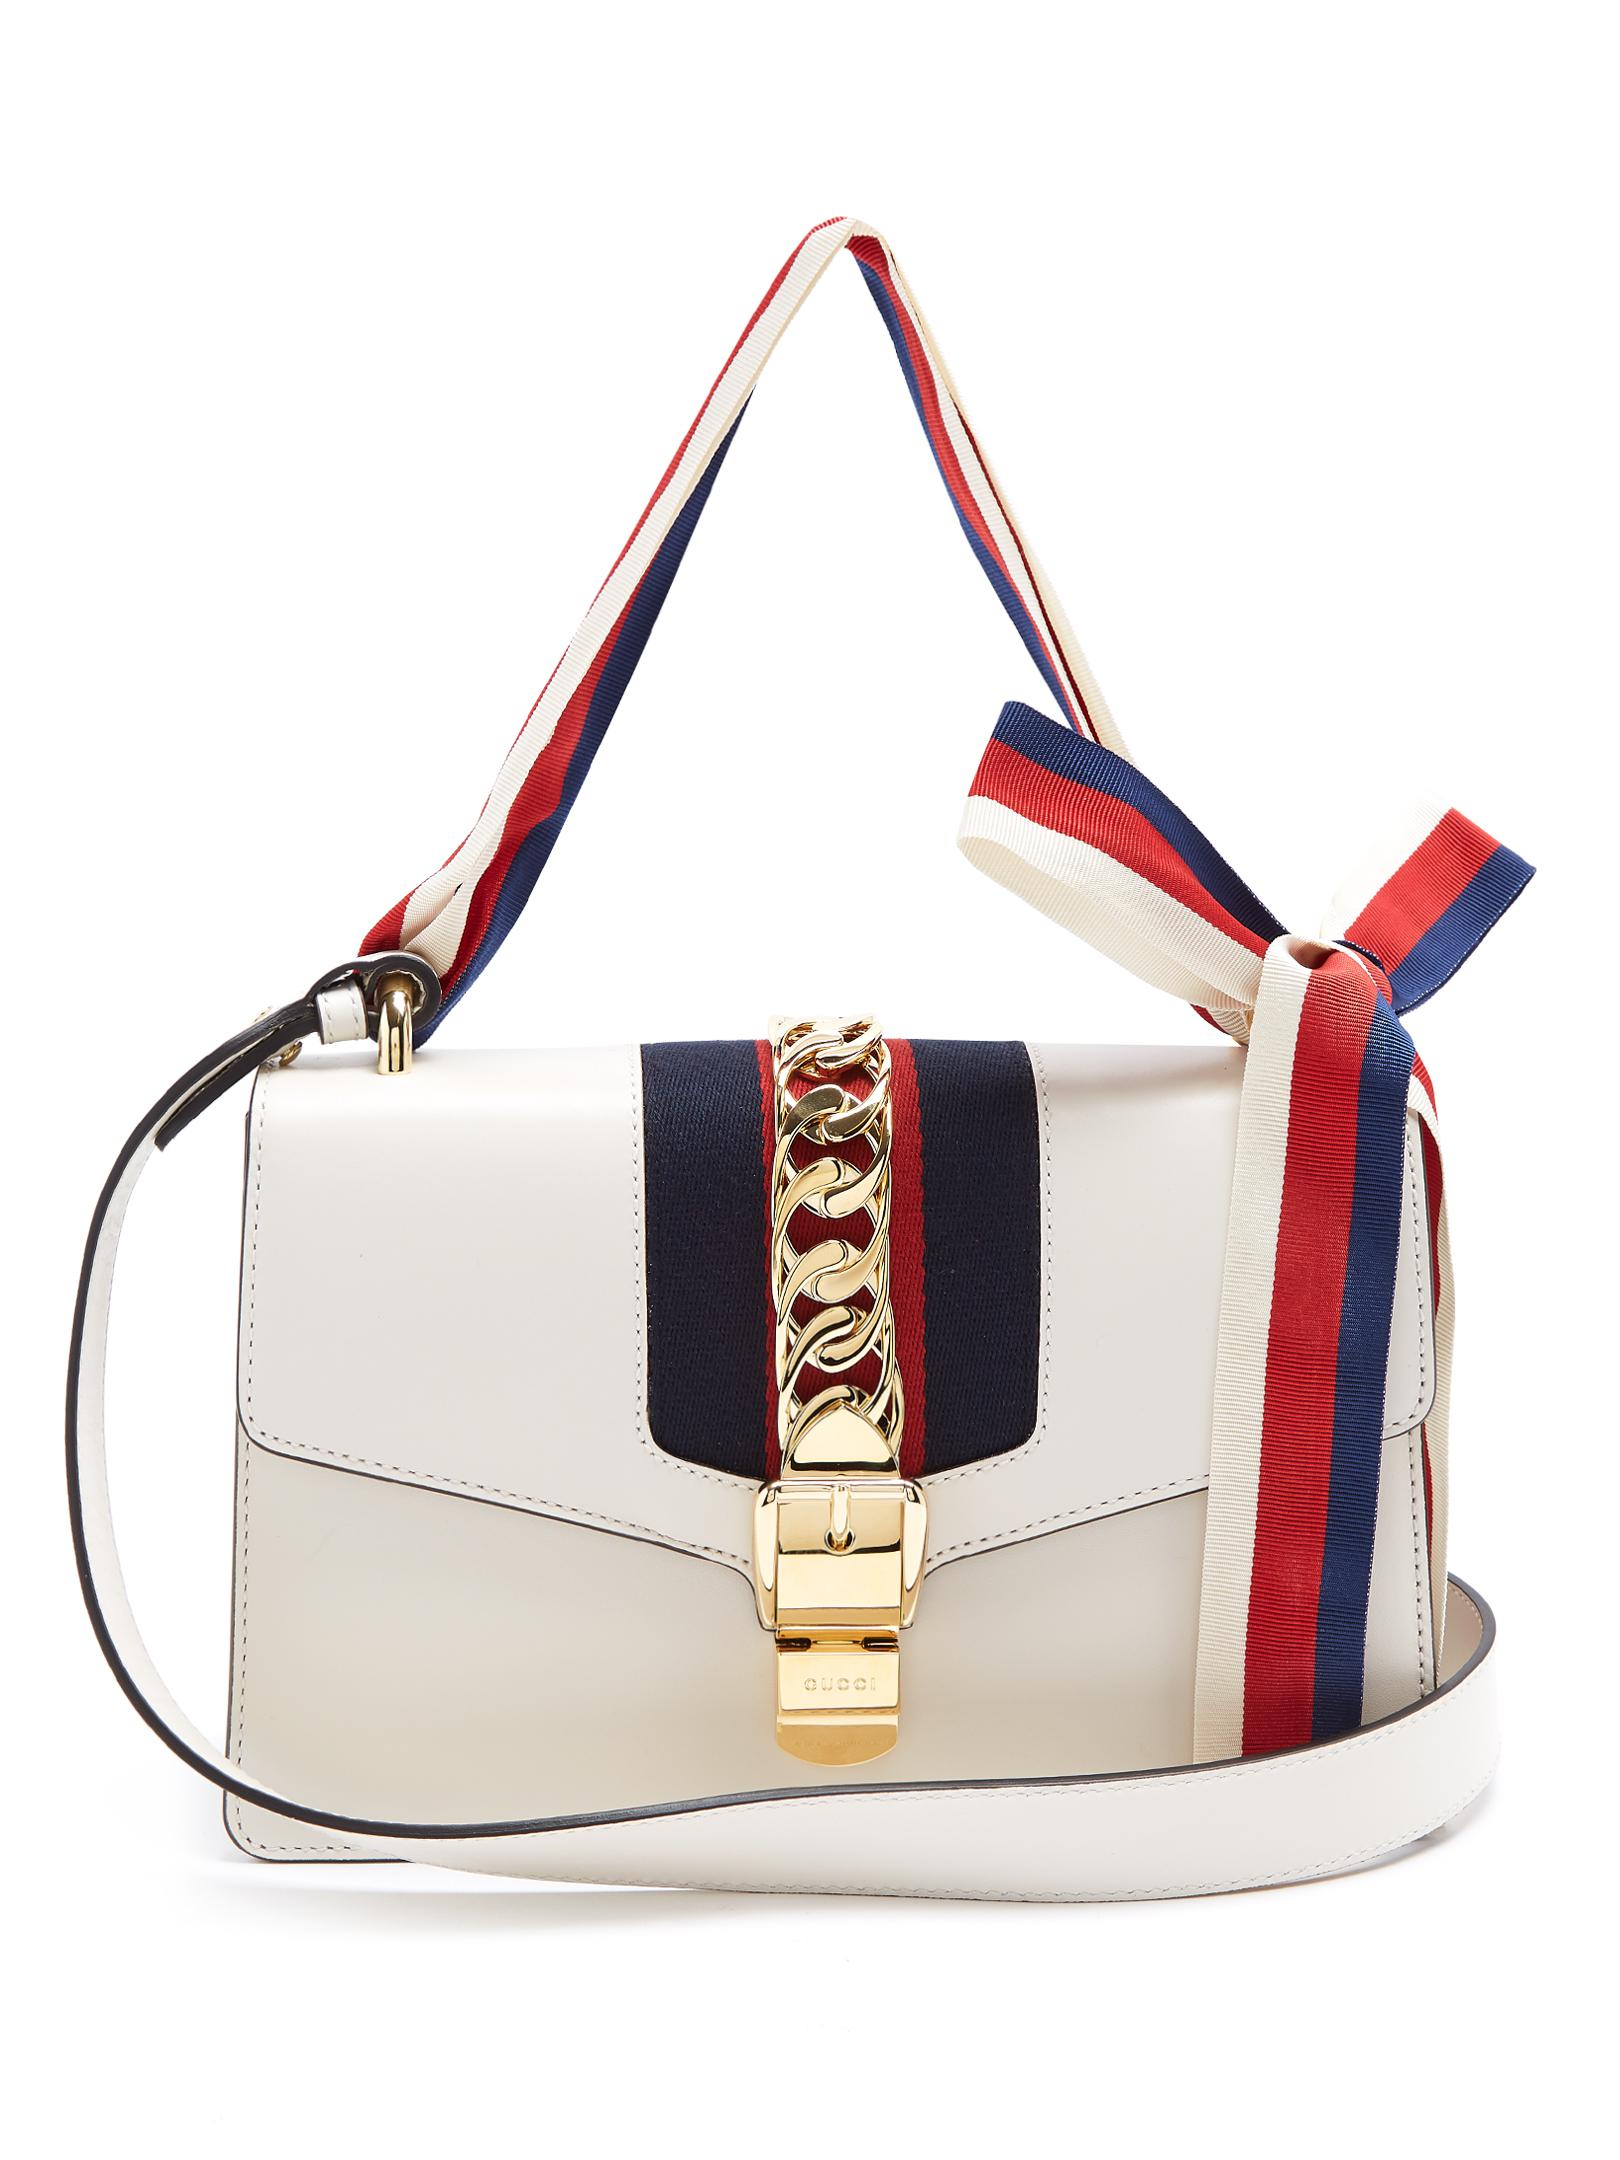 3cf86975f29163 Gucci Sylvie Leather Shoulder Bag White | Stanford Center for ...